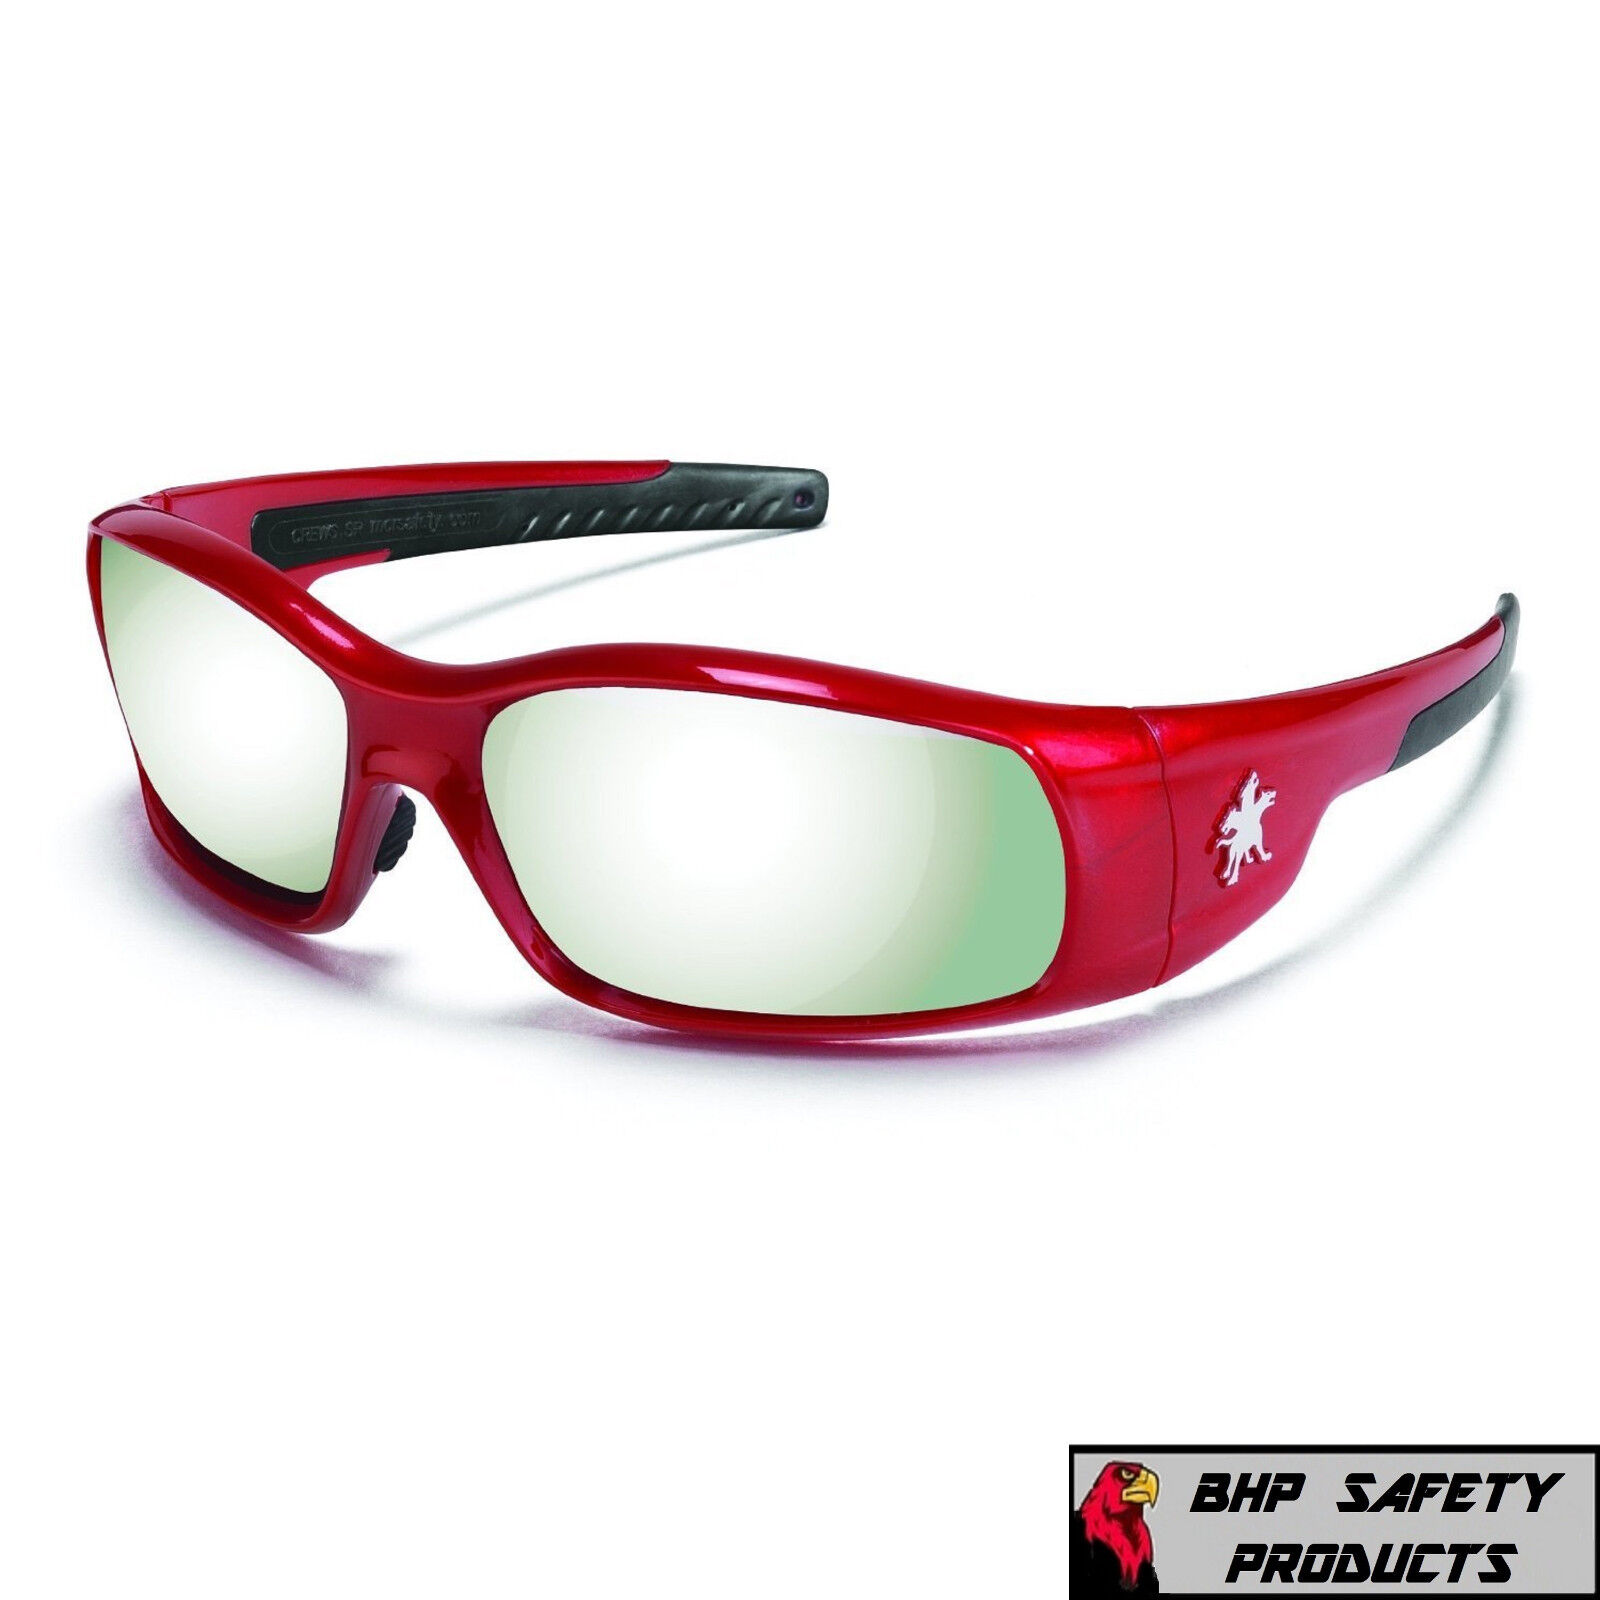 MCR CREWS SWAGGER SAFETY GLASSES SUNGLASSES WORK SPORT EYEWEAR CHOOSE YOUR COLOR SR137 SILVER MIRROR/RED FRAME